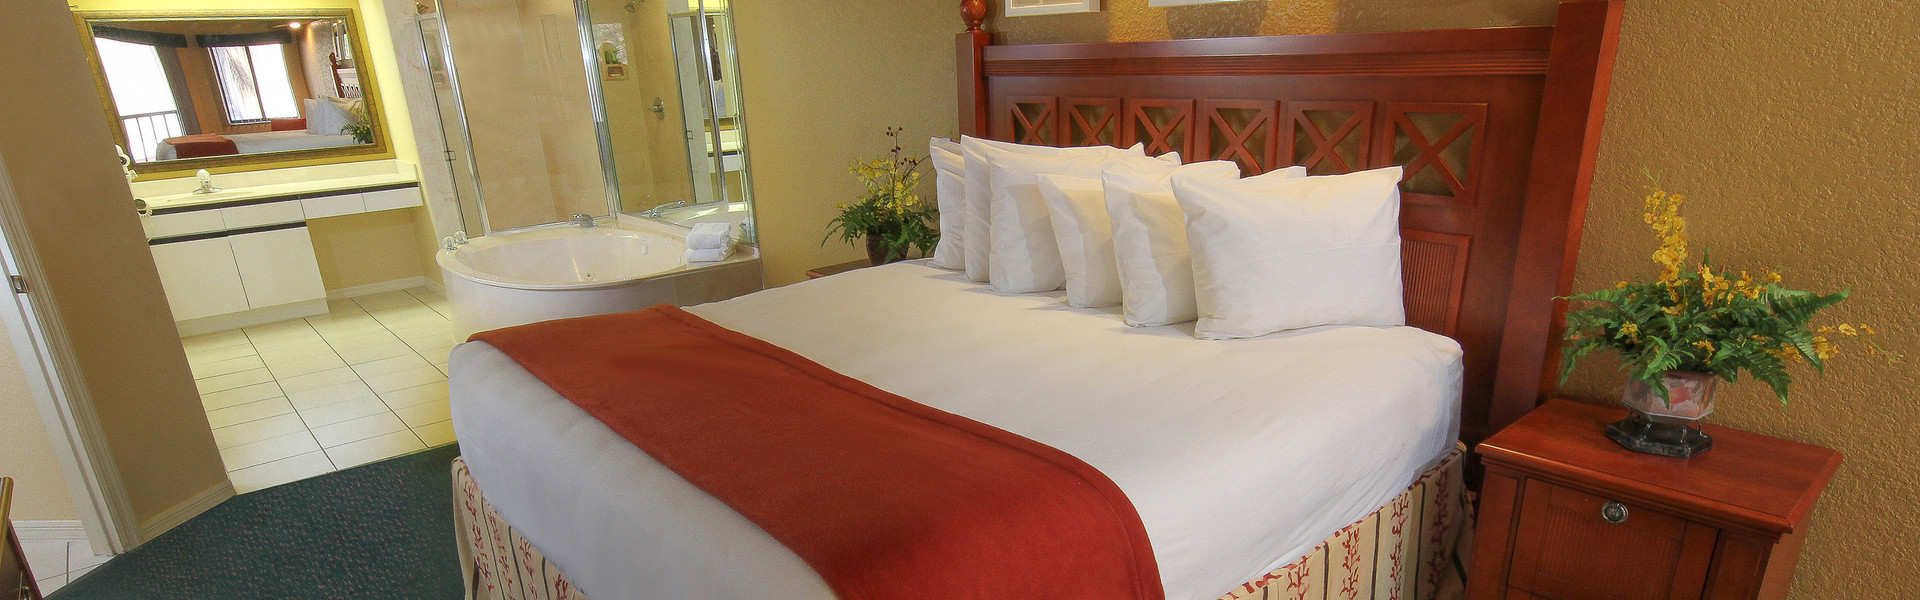 Kissimmee resort with 2 Bedroom Suites near Disney World | Suite Near Disney World